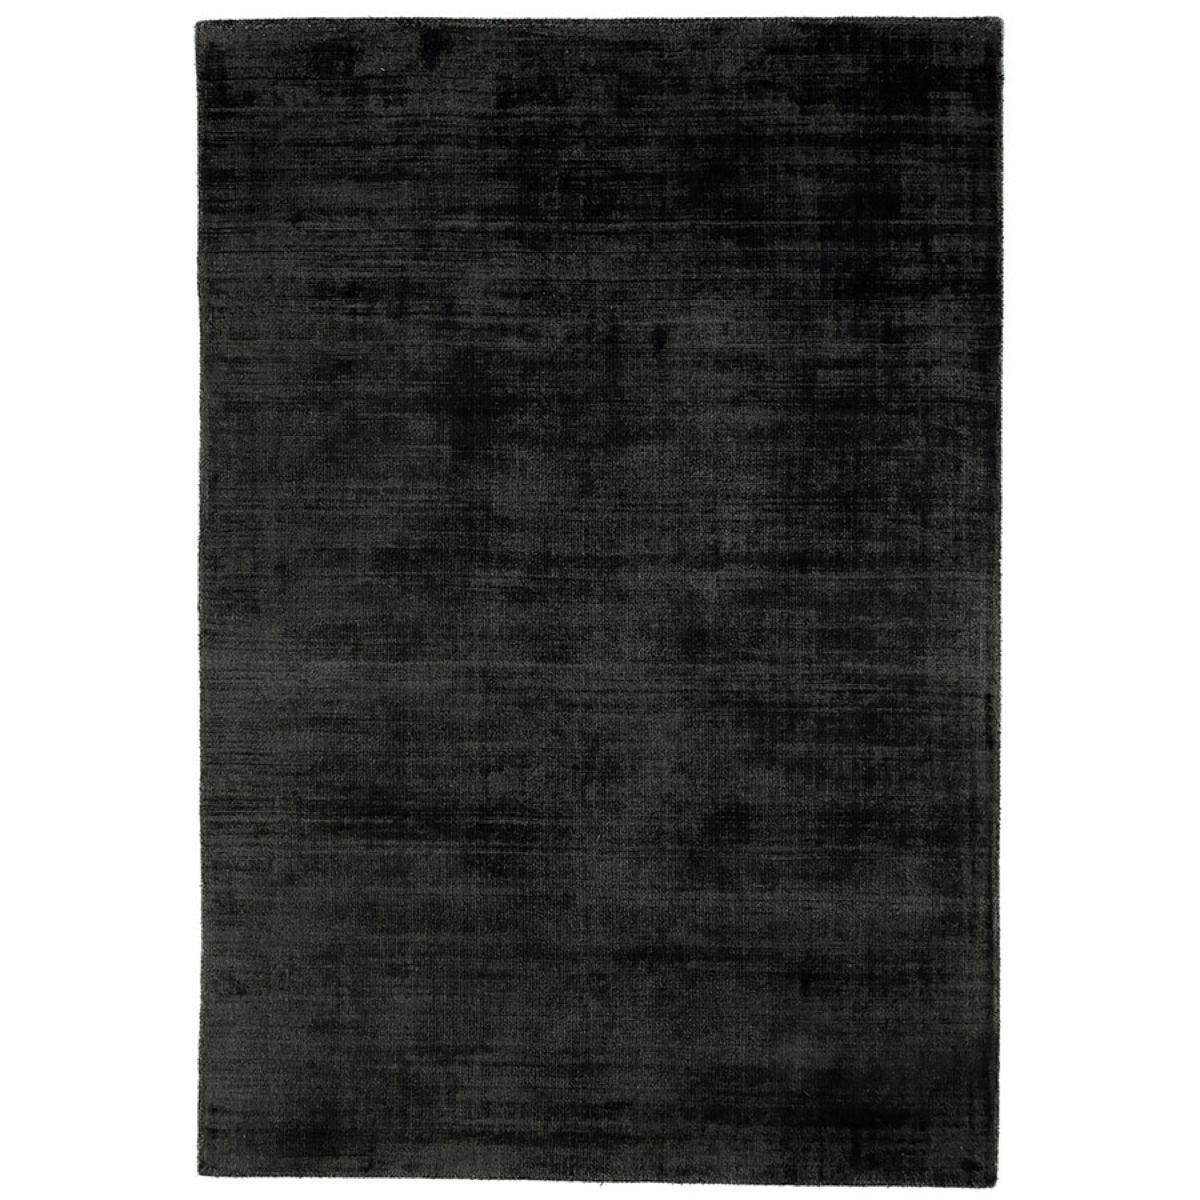 Asiatic Blade Rug , 120 x 170cm - Charcoal